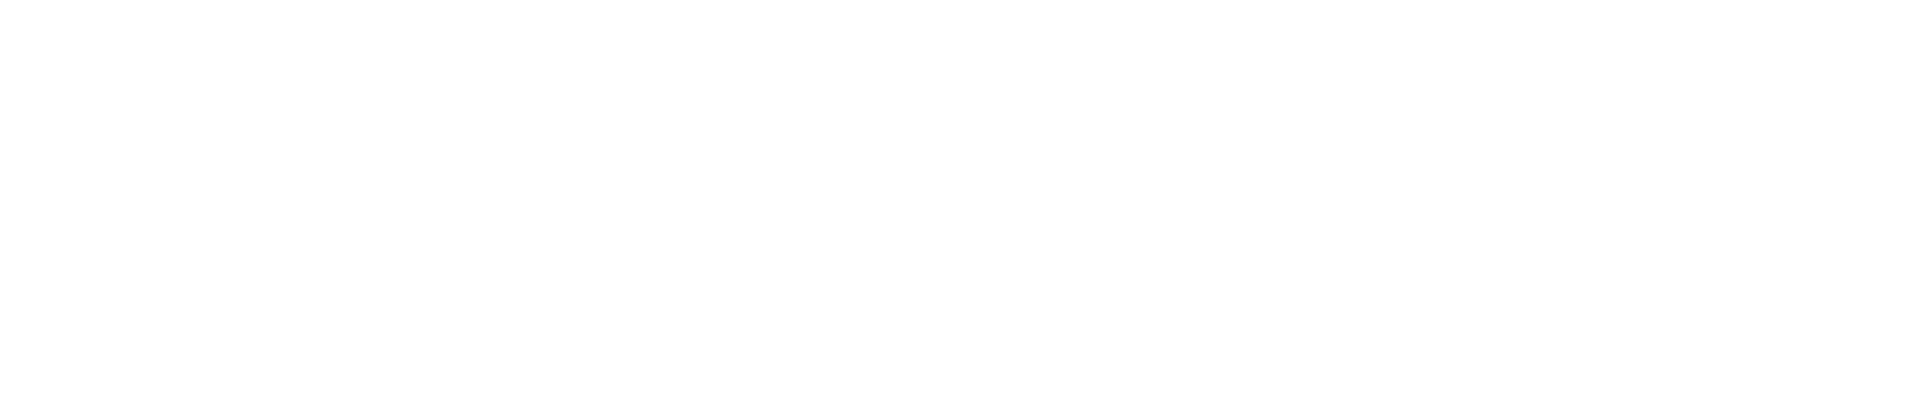 Accelerance - The Global Software Outsourcing Authority